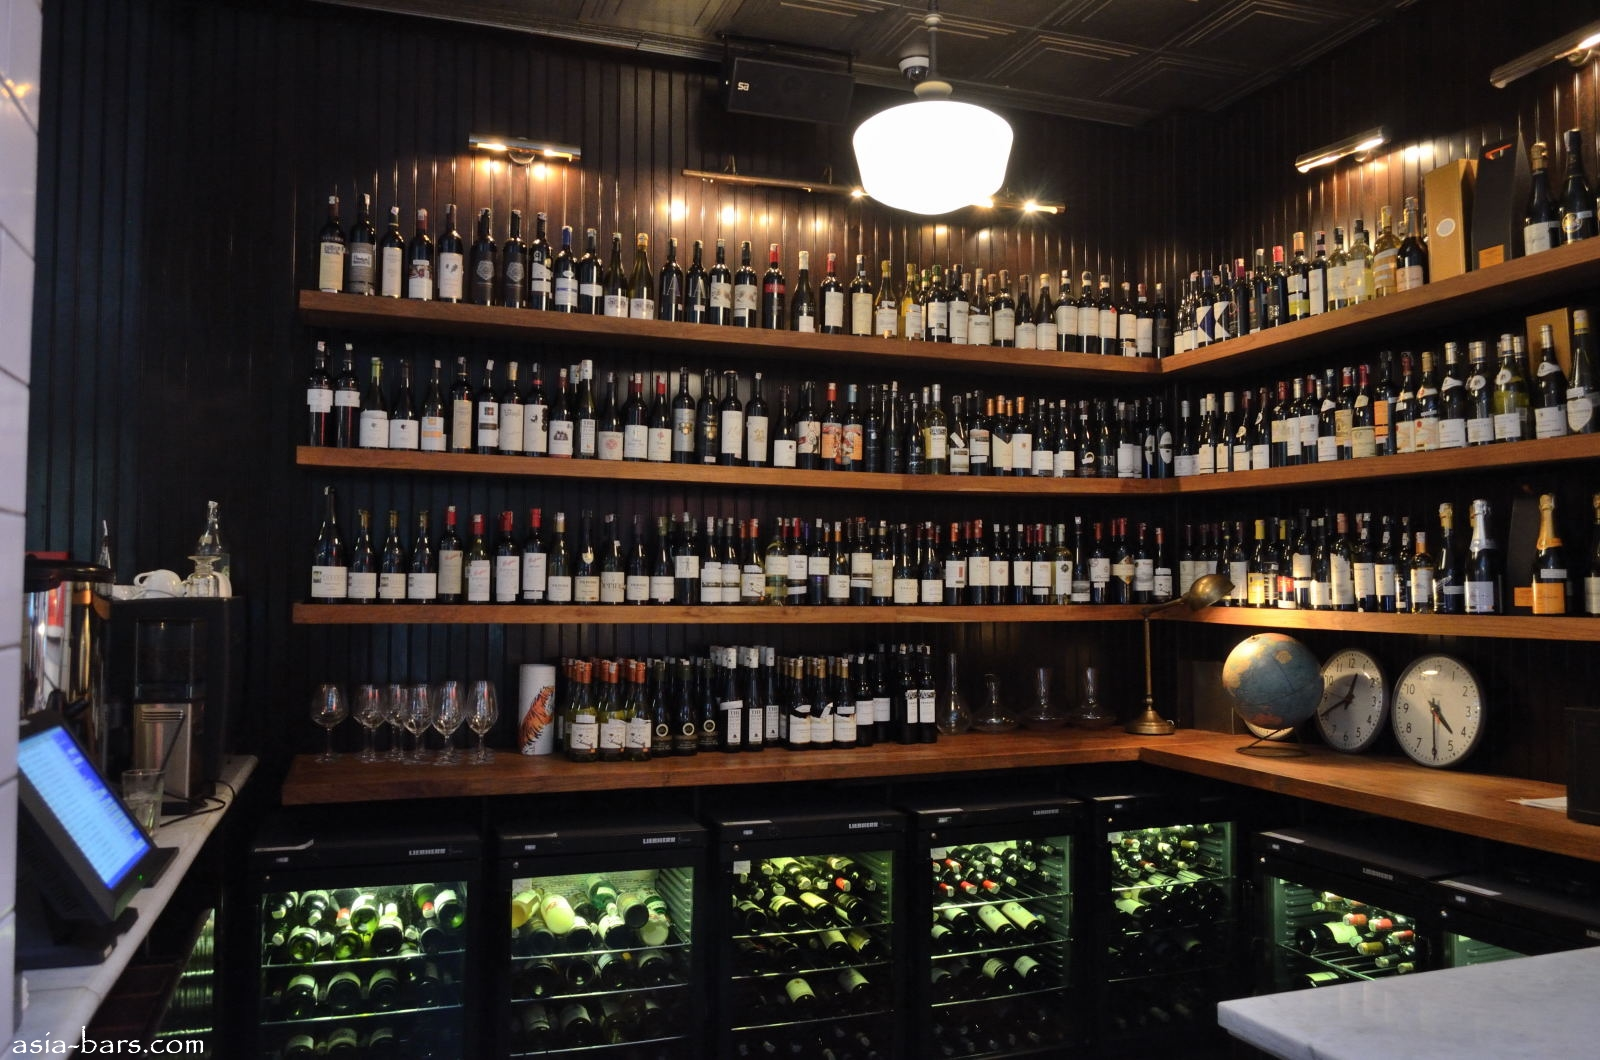 Union brasserie bakery bar celebrated restaurant in jakarta impresses with culinary for Walk in wine cellar